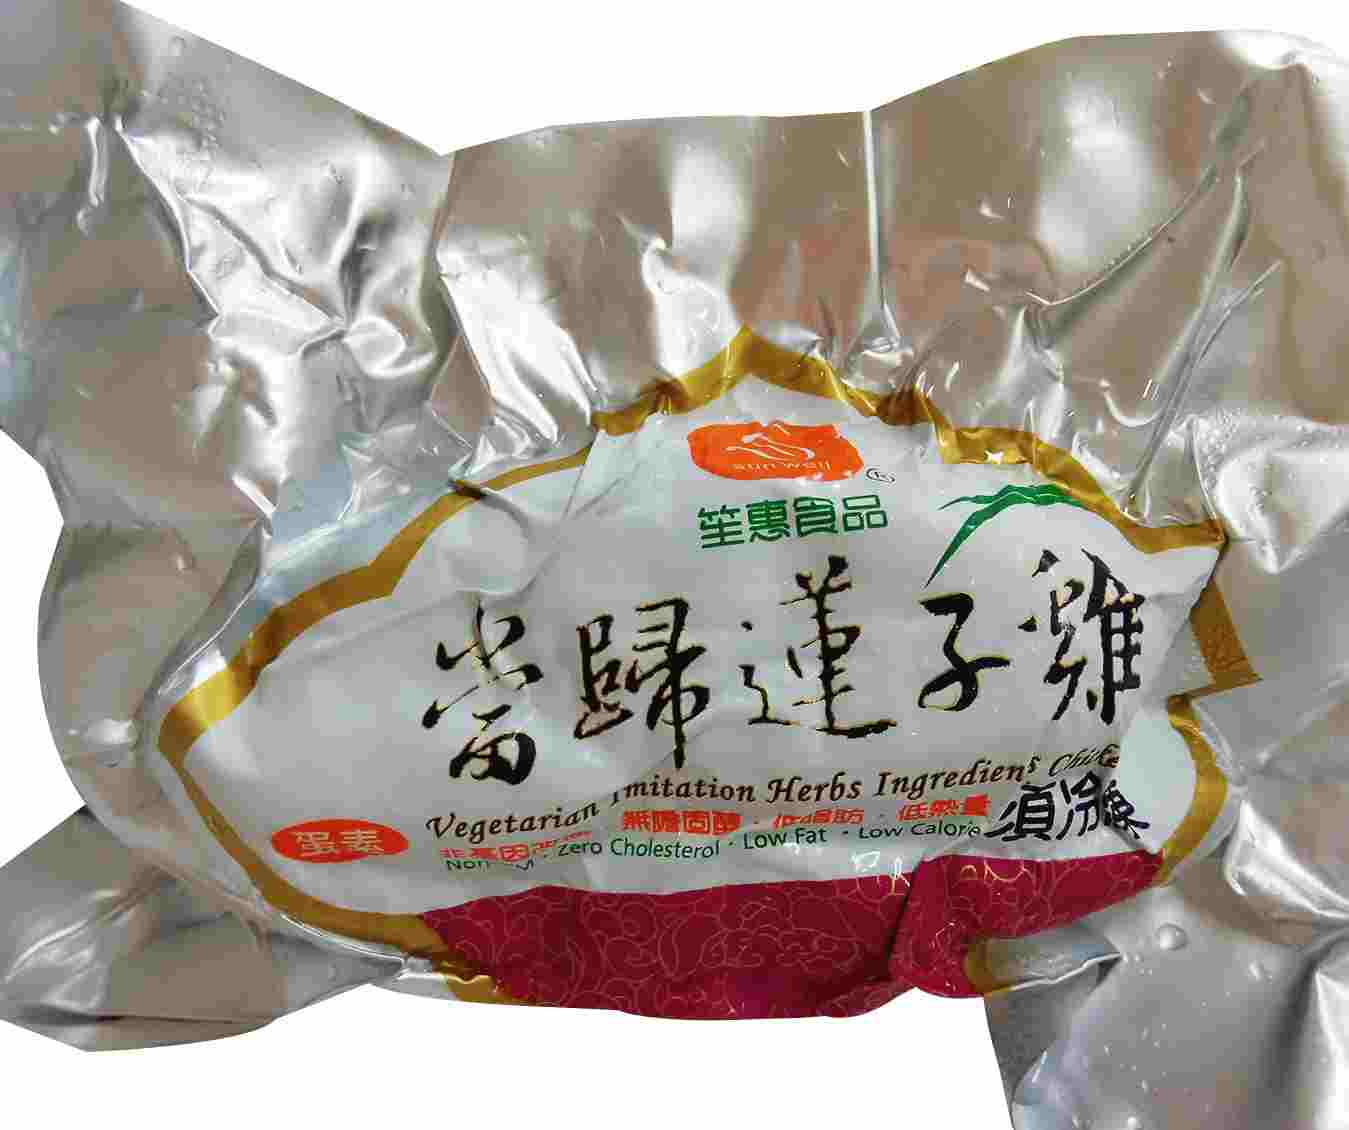 Image Vege imitation Herbs Ingredients Chicken 笙惠-当归莲子鸡 480 grams